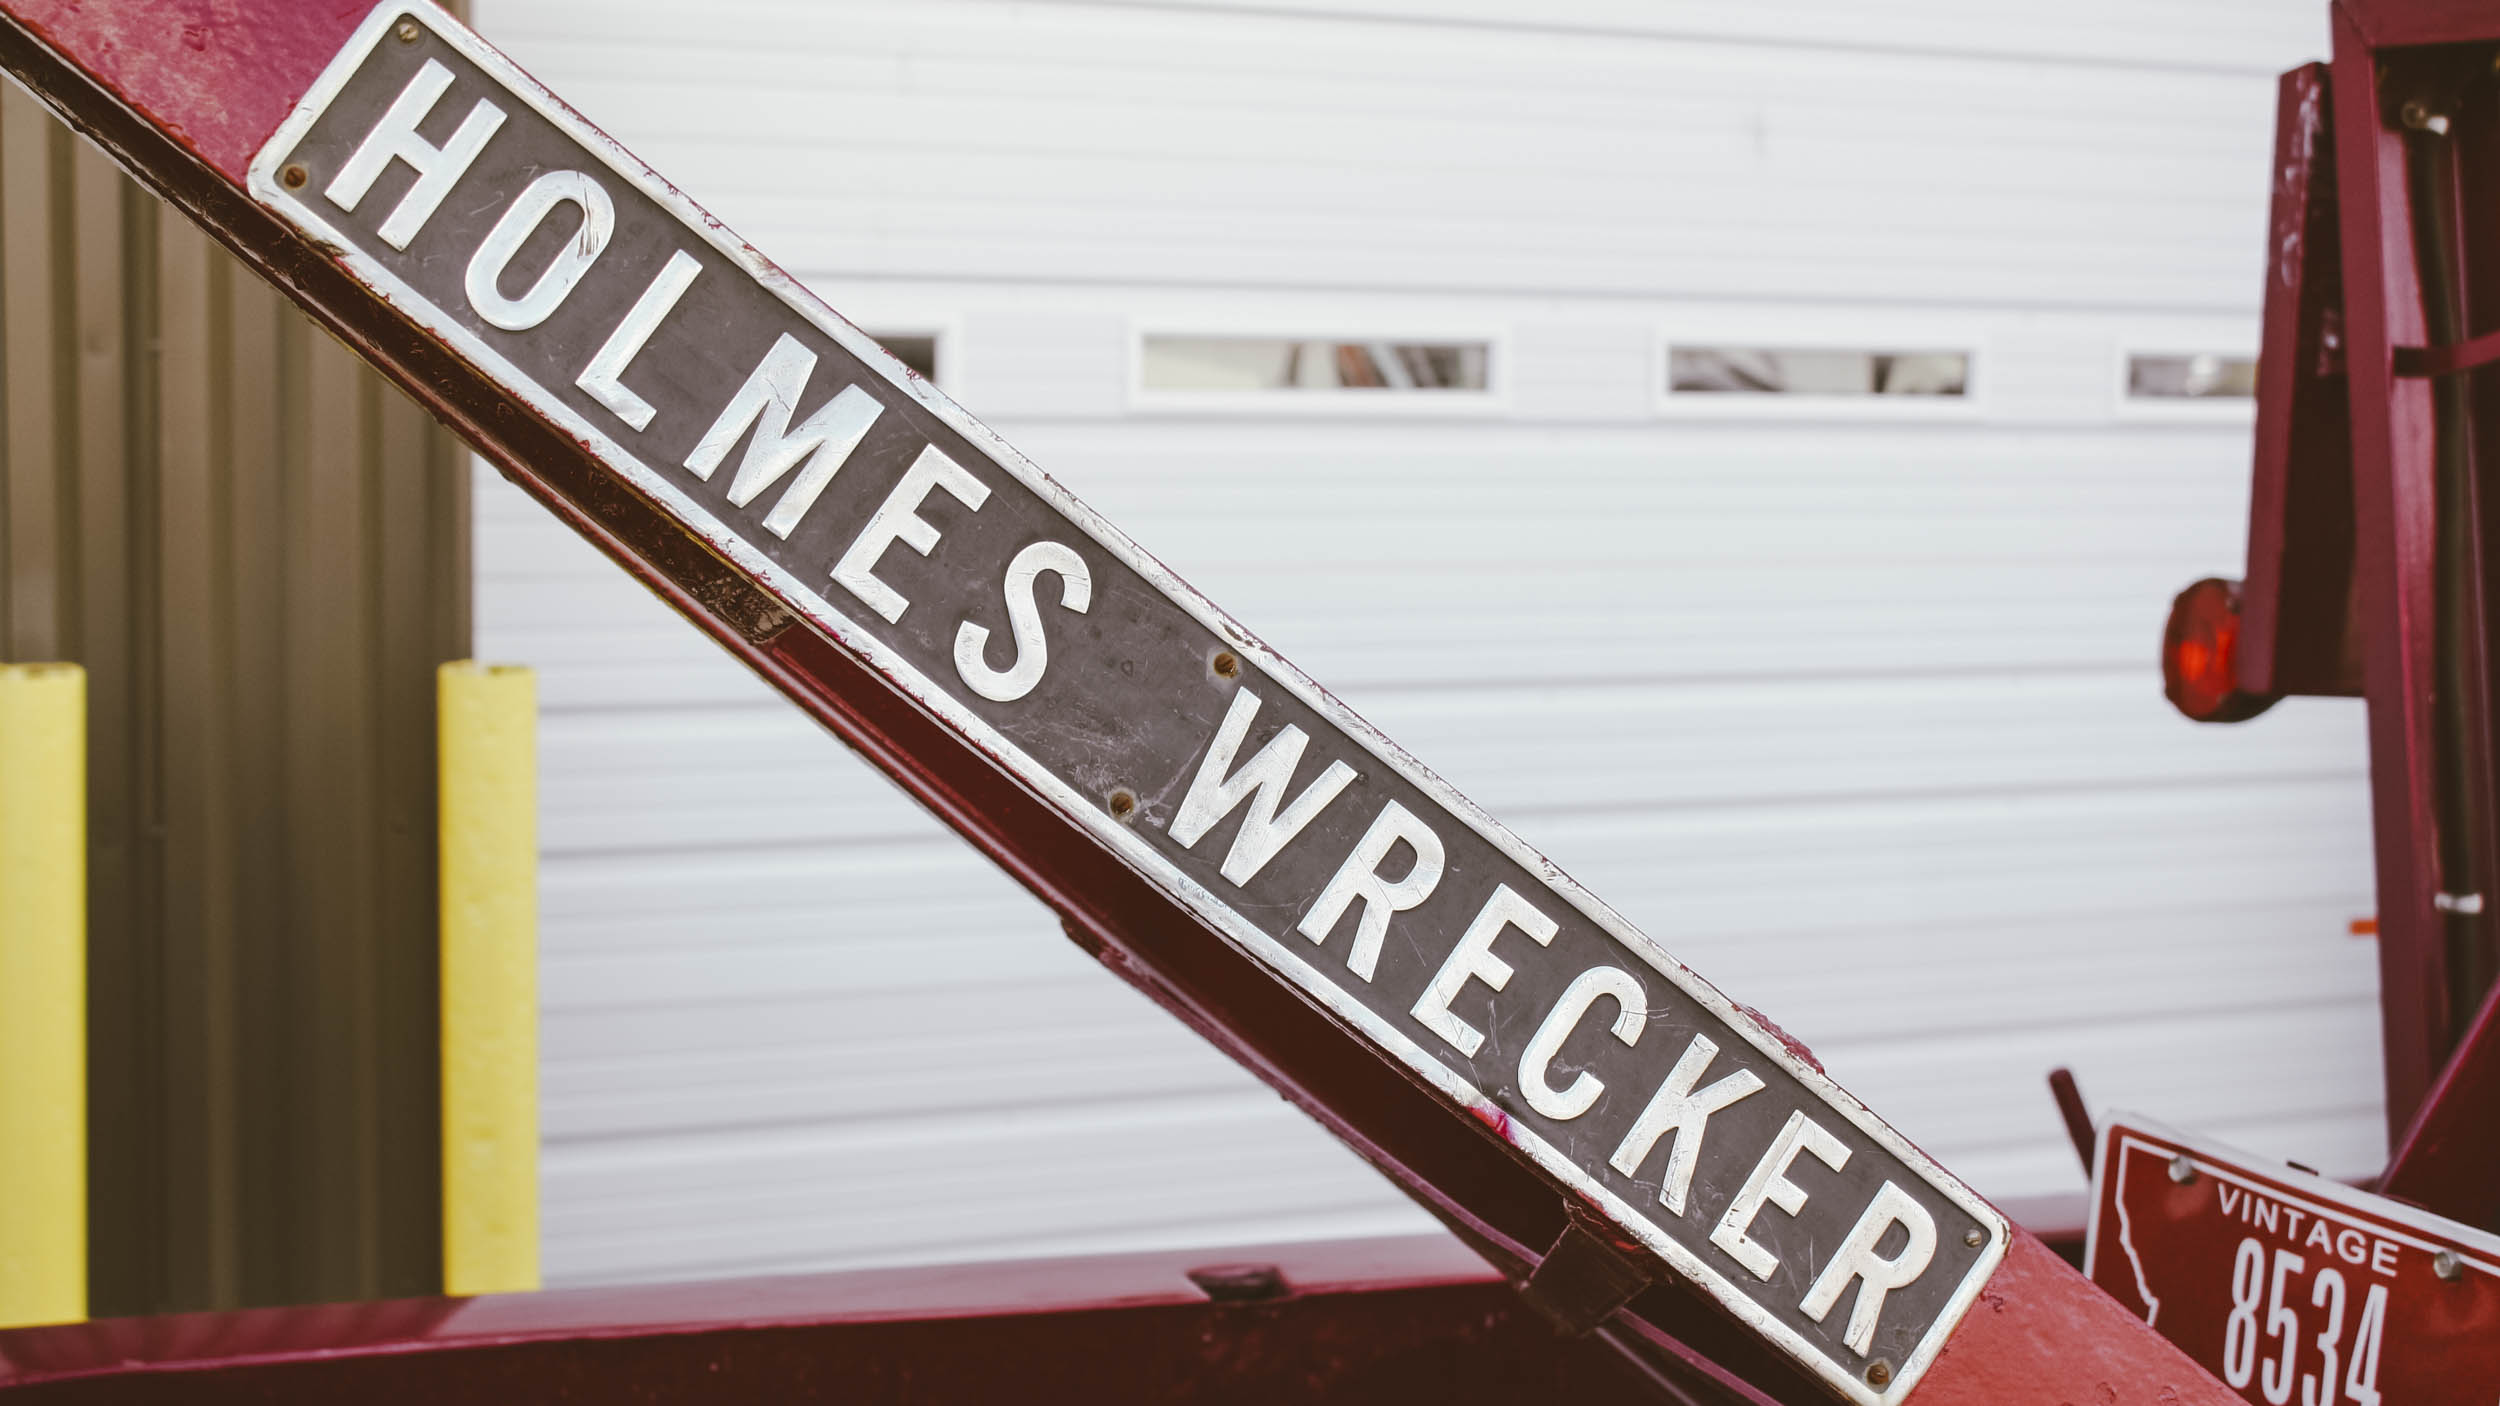 The Holmes 330 wrecker and the '55 Chevrolet was the mainstay of Frank's operation for many years and served as the launching point of his career that would land him as the second inductee into the Montana Tow Truck Association Hall of Fame